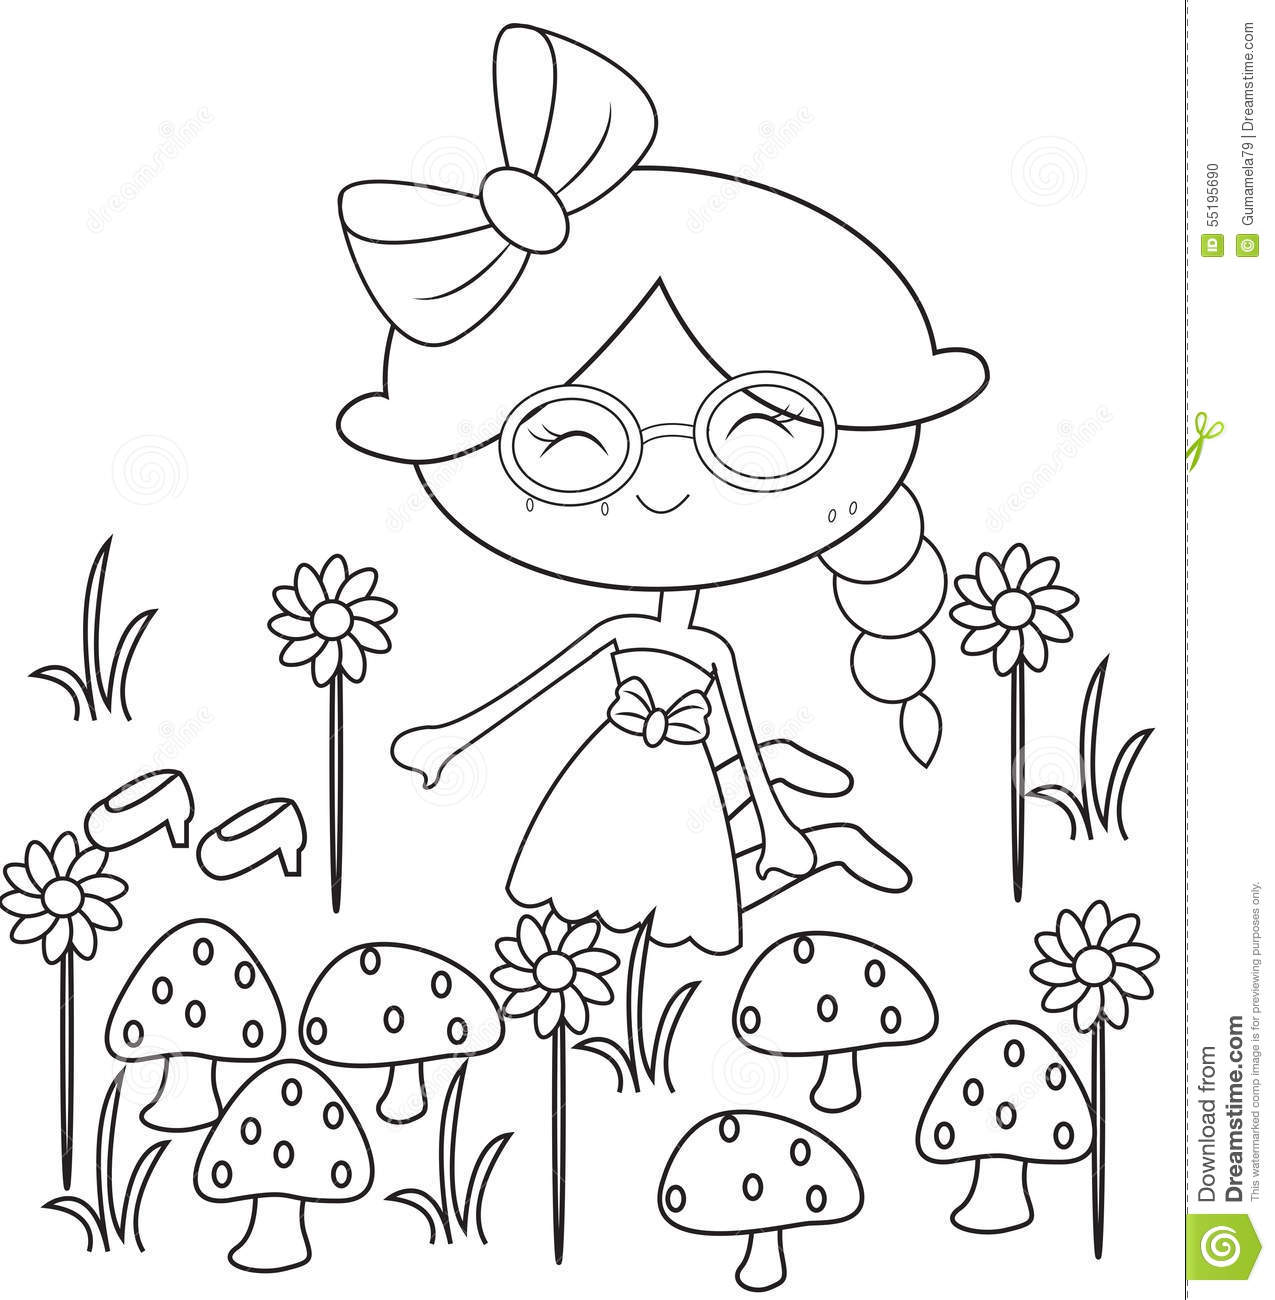 Free Flower Garden Coloring Pages, Download Free Clip Art, Free ... | 1300x1275